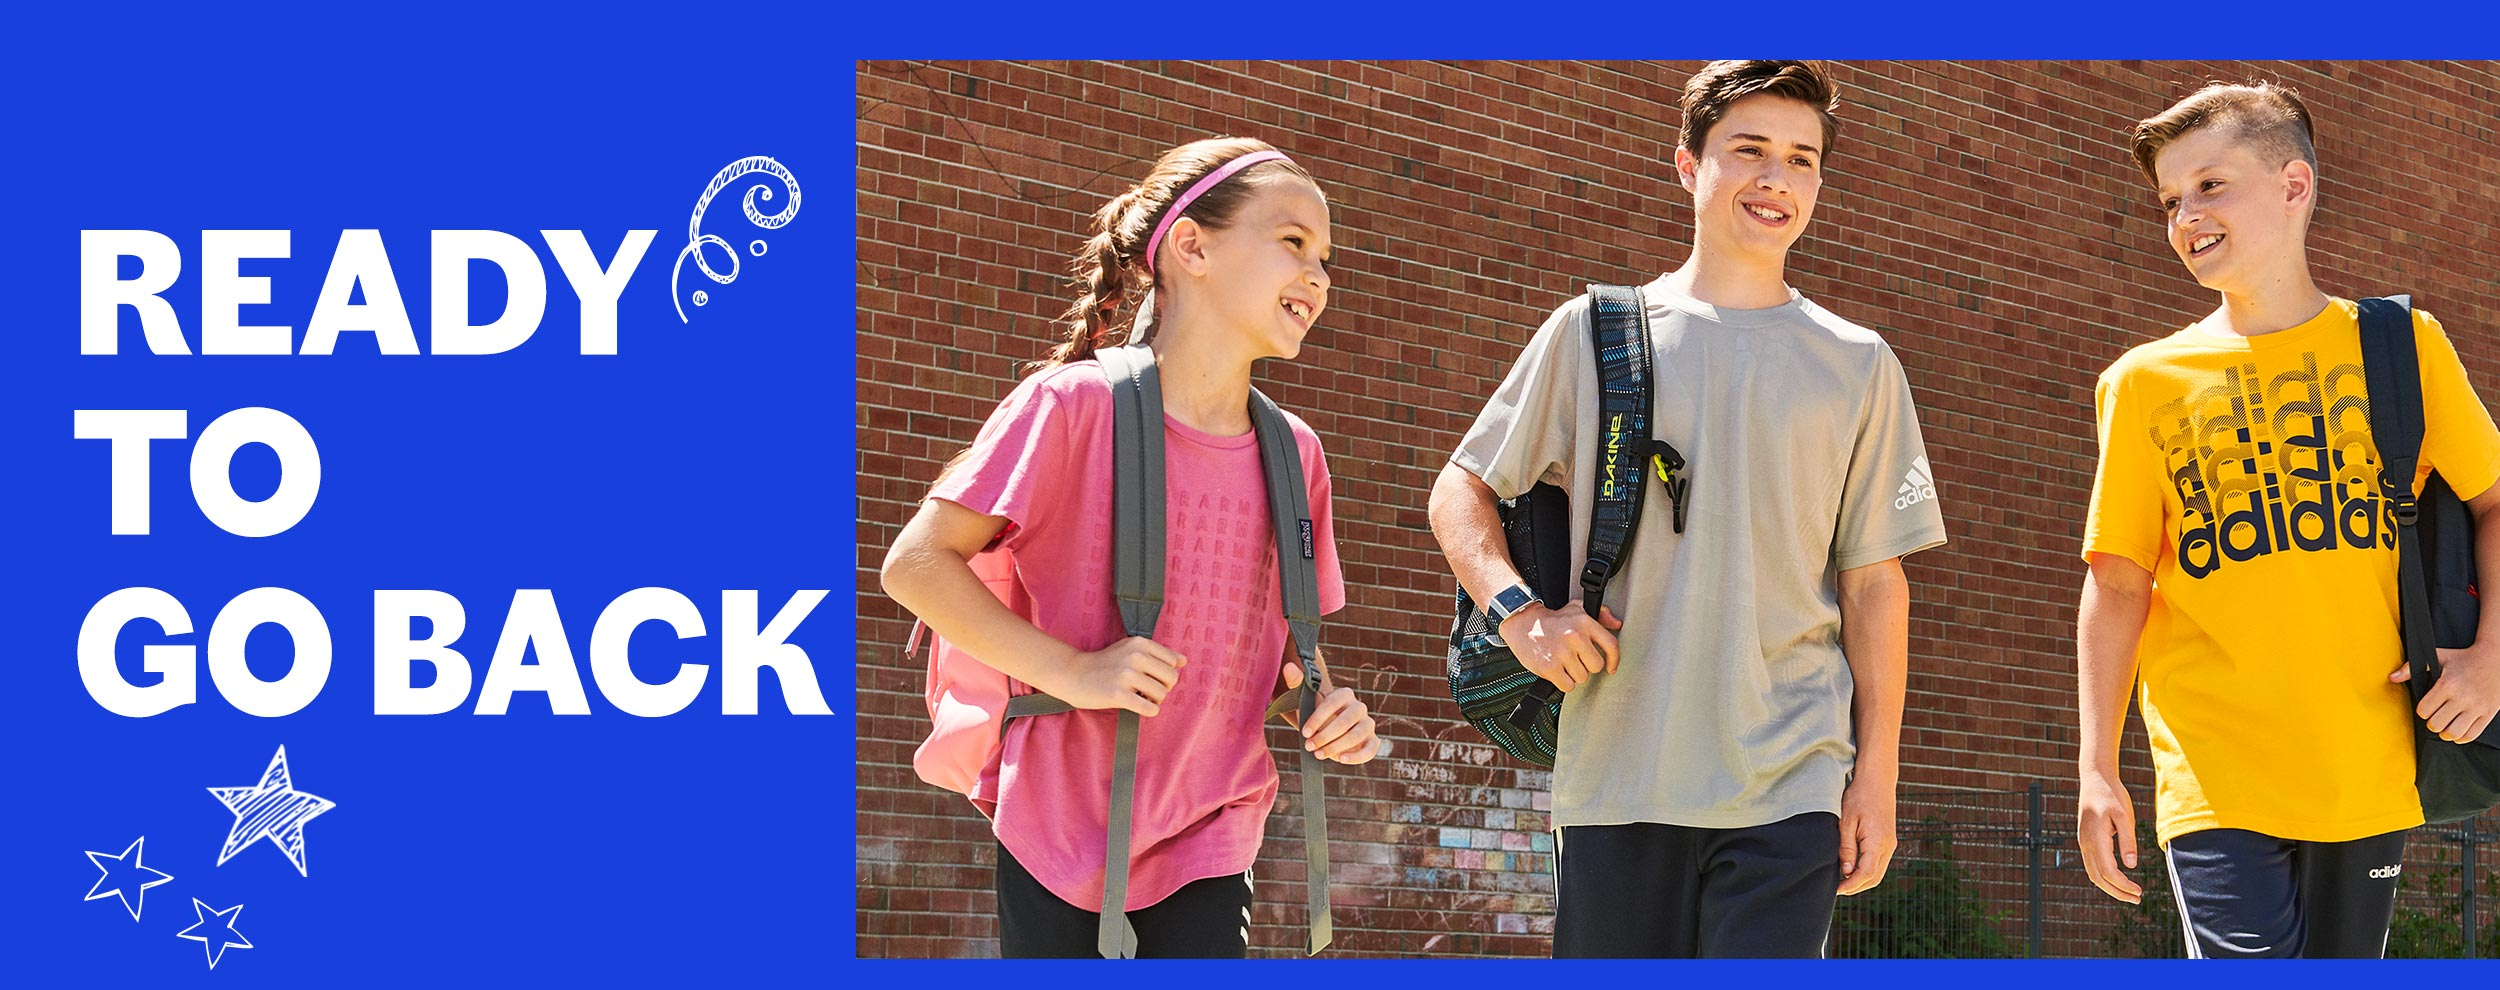 children -ready for back to school 2019